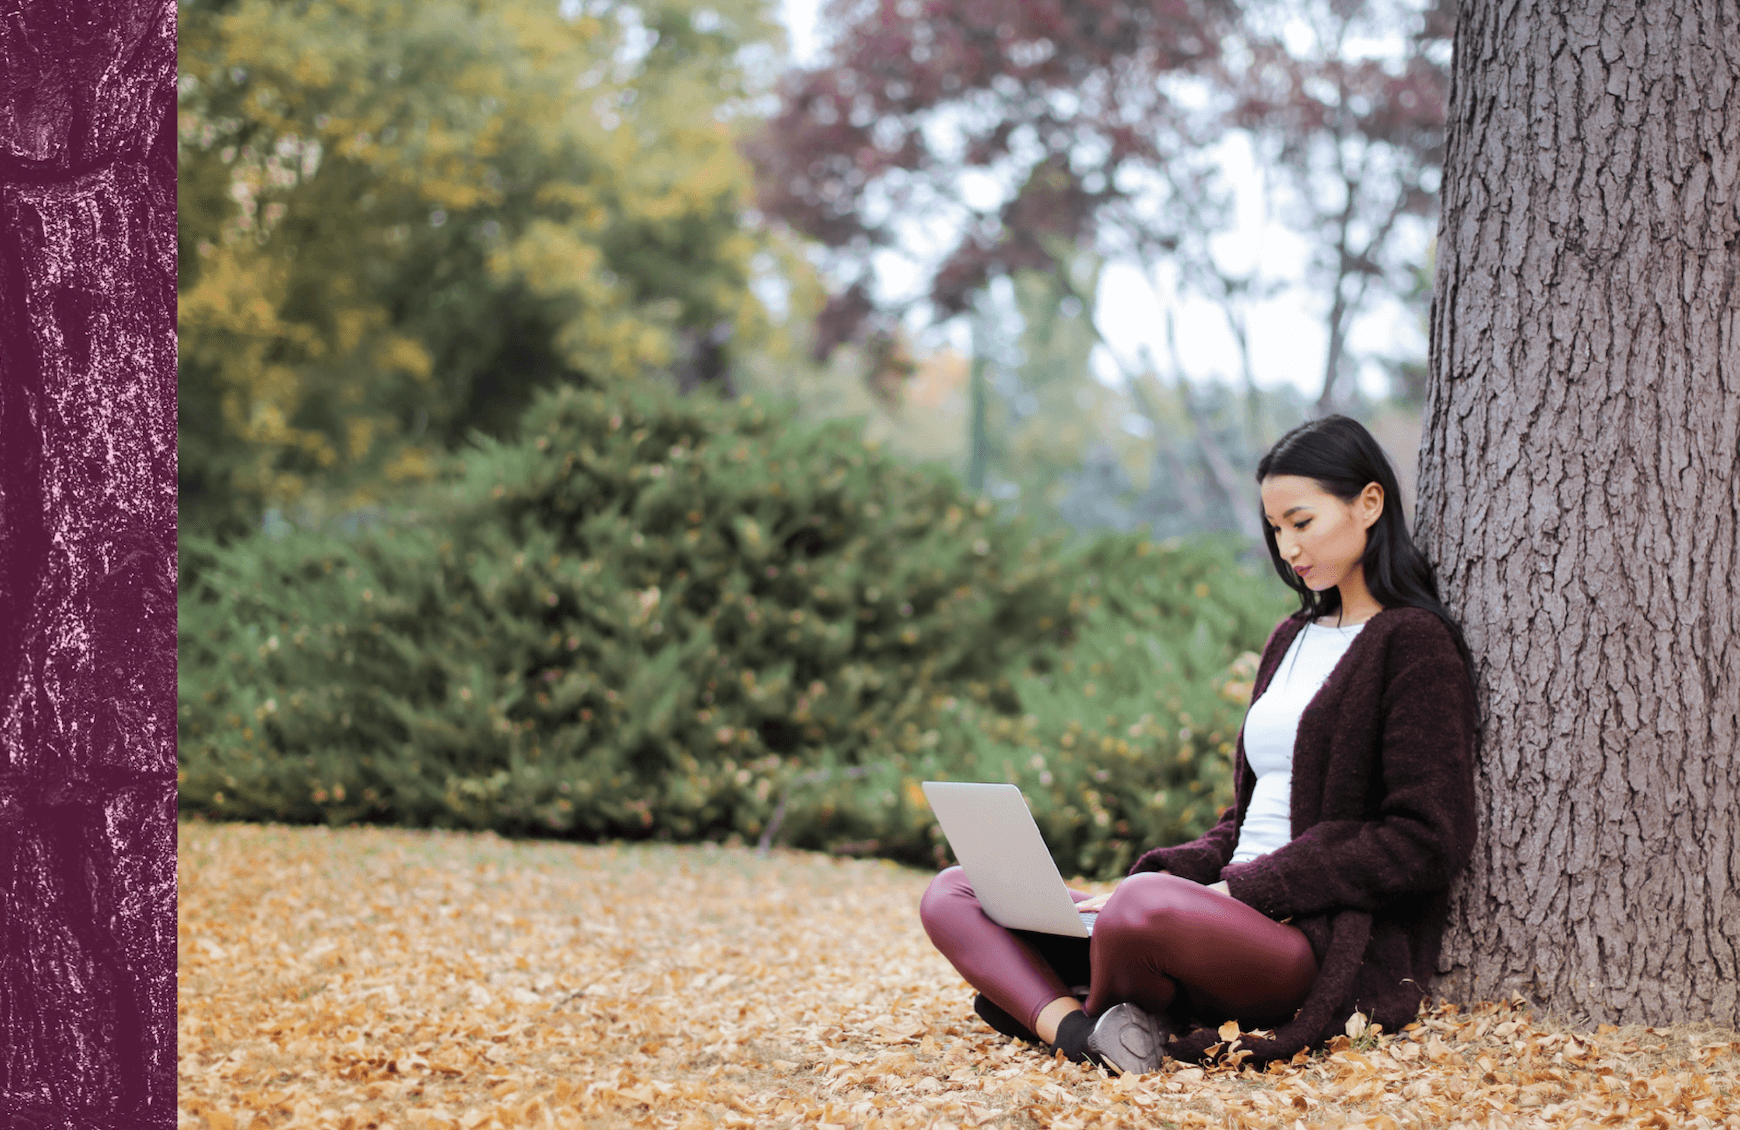 What's the impact of remote work on the environment?